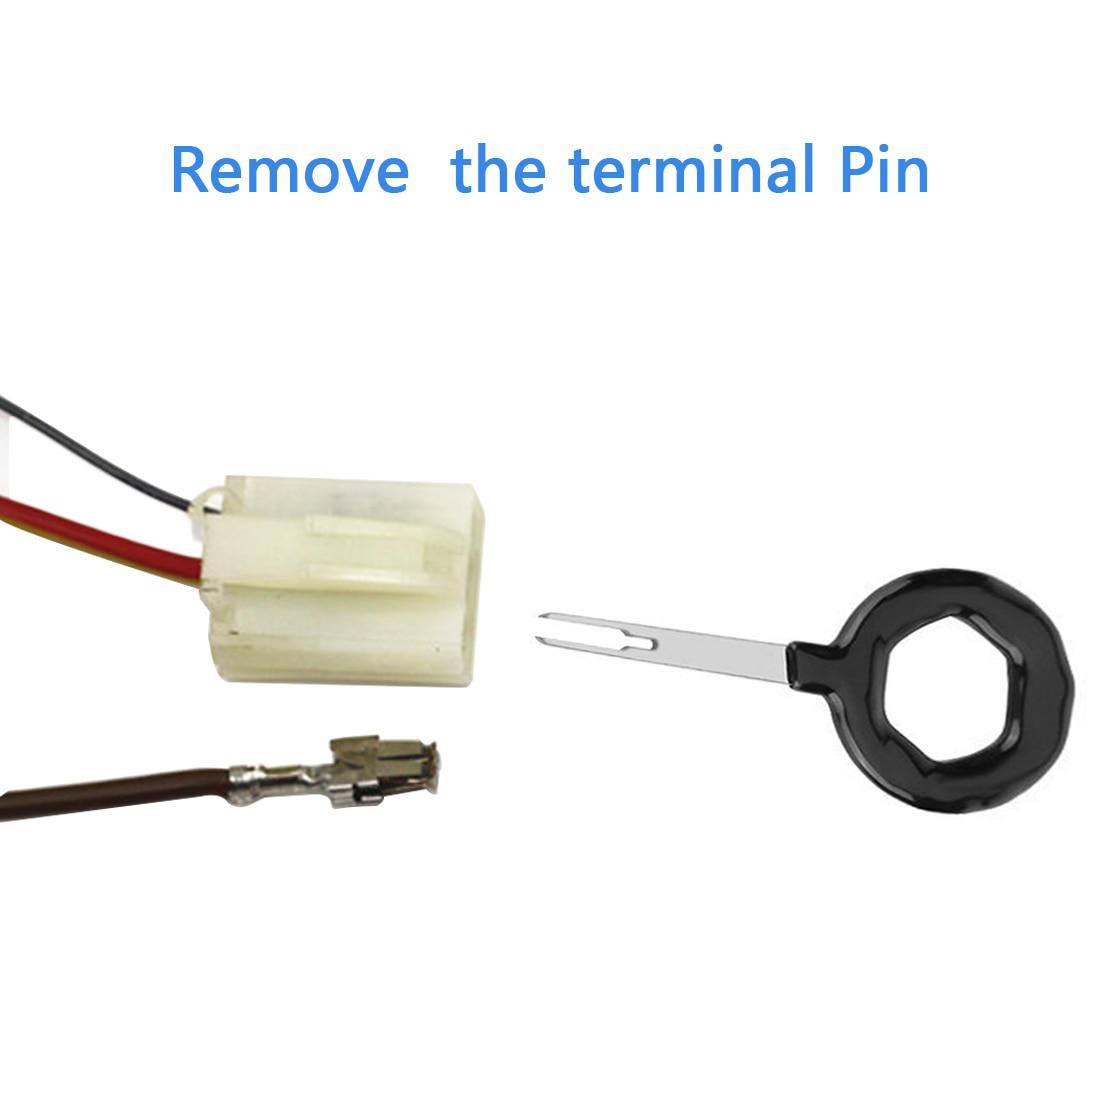 medium resolution of terminal removal tool car repair tool electrical wiring crimp connector pin extractor